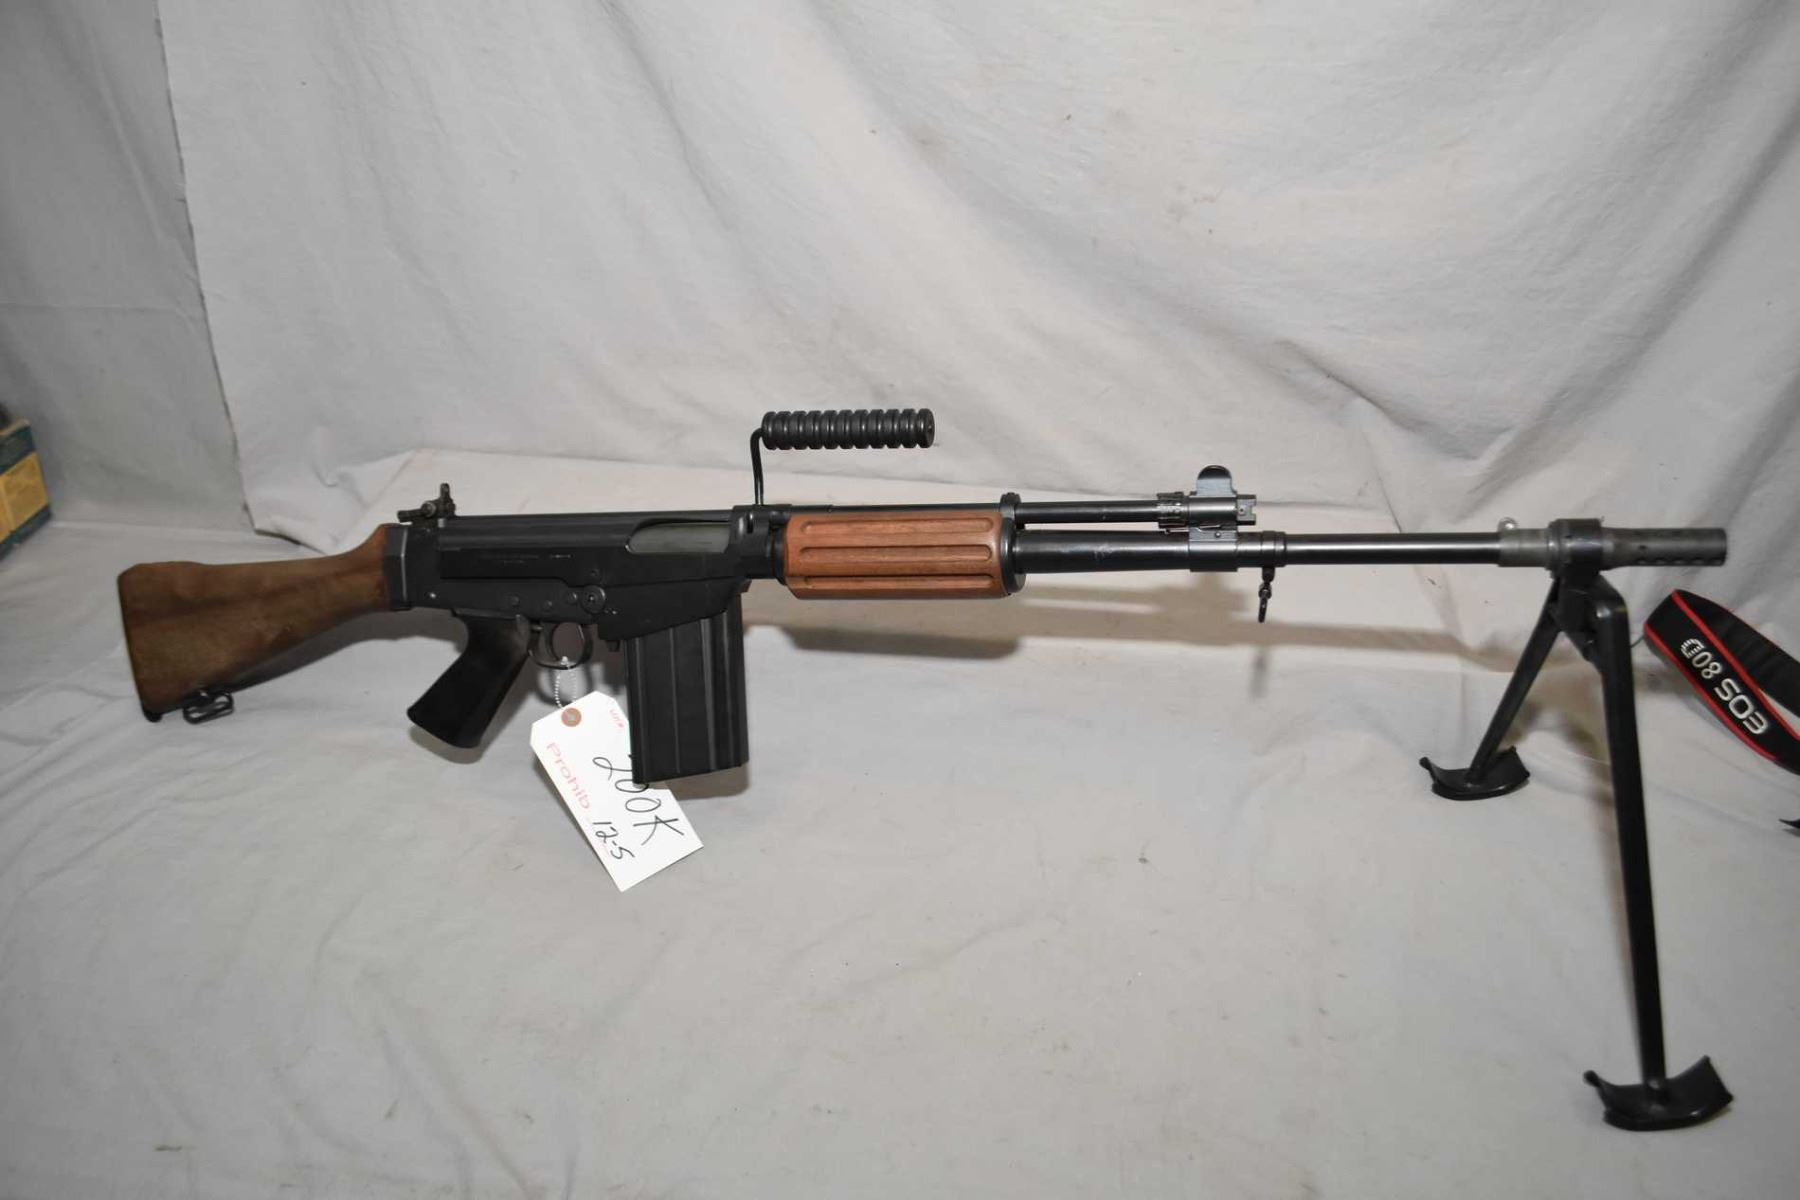 Fn Fal Fabrique Nationale Herstal Model Fal Competition